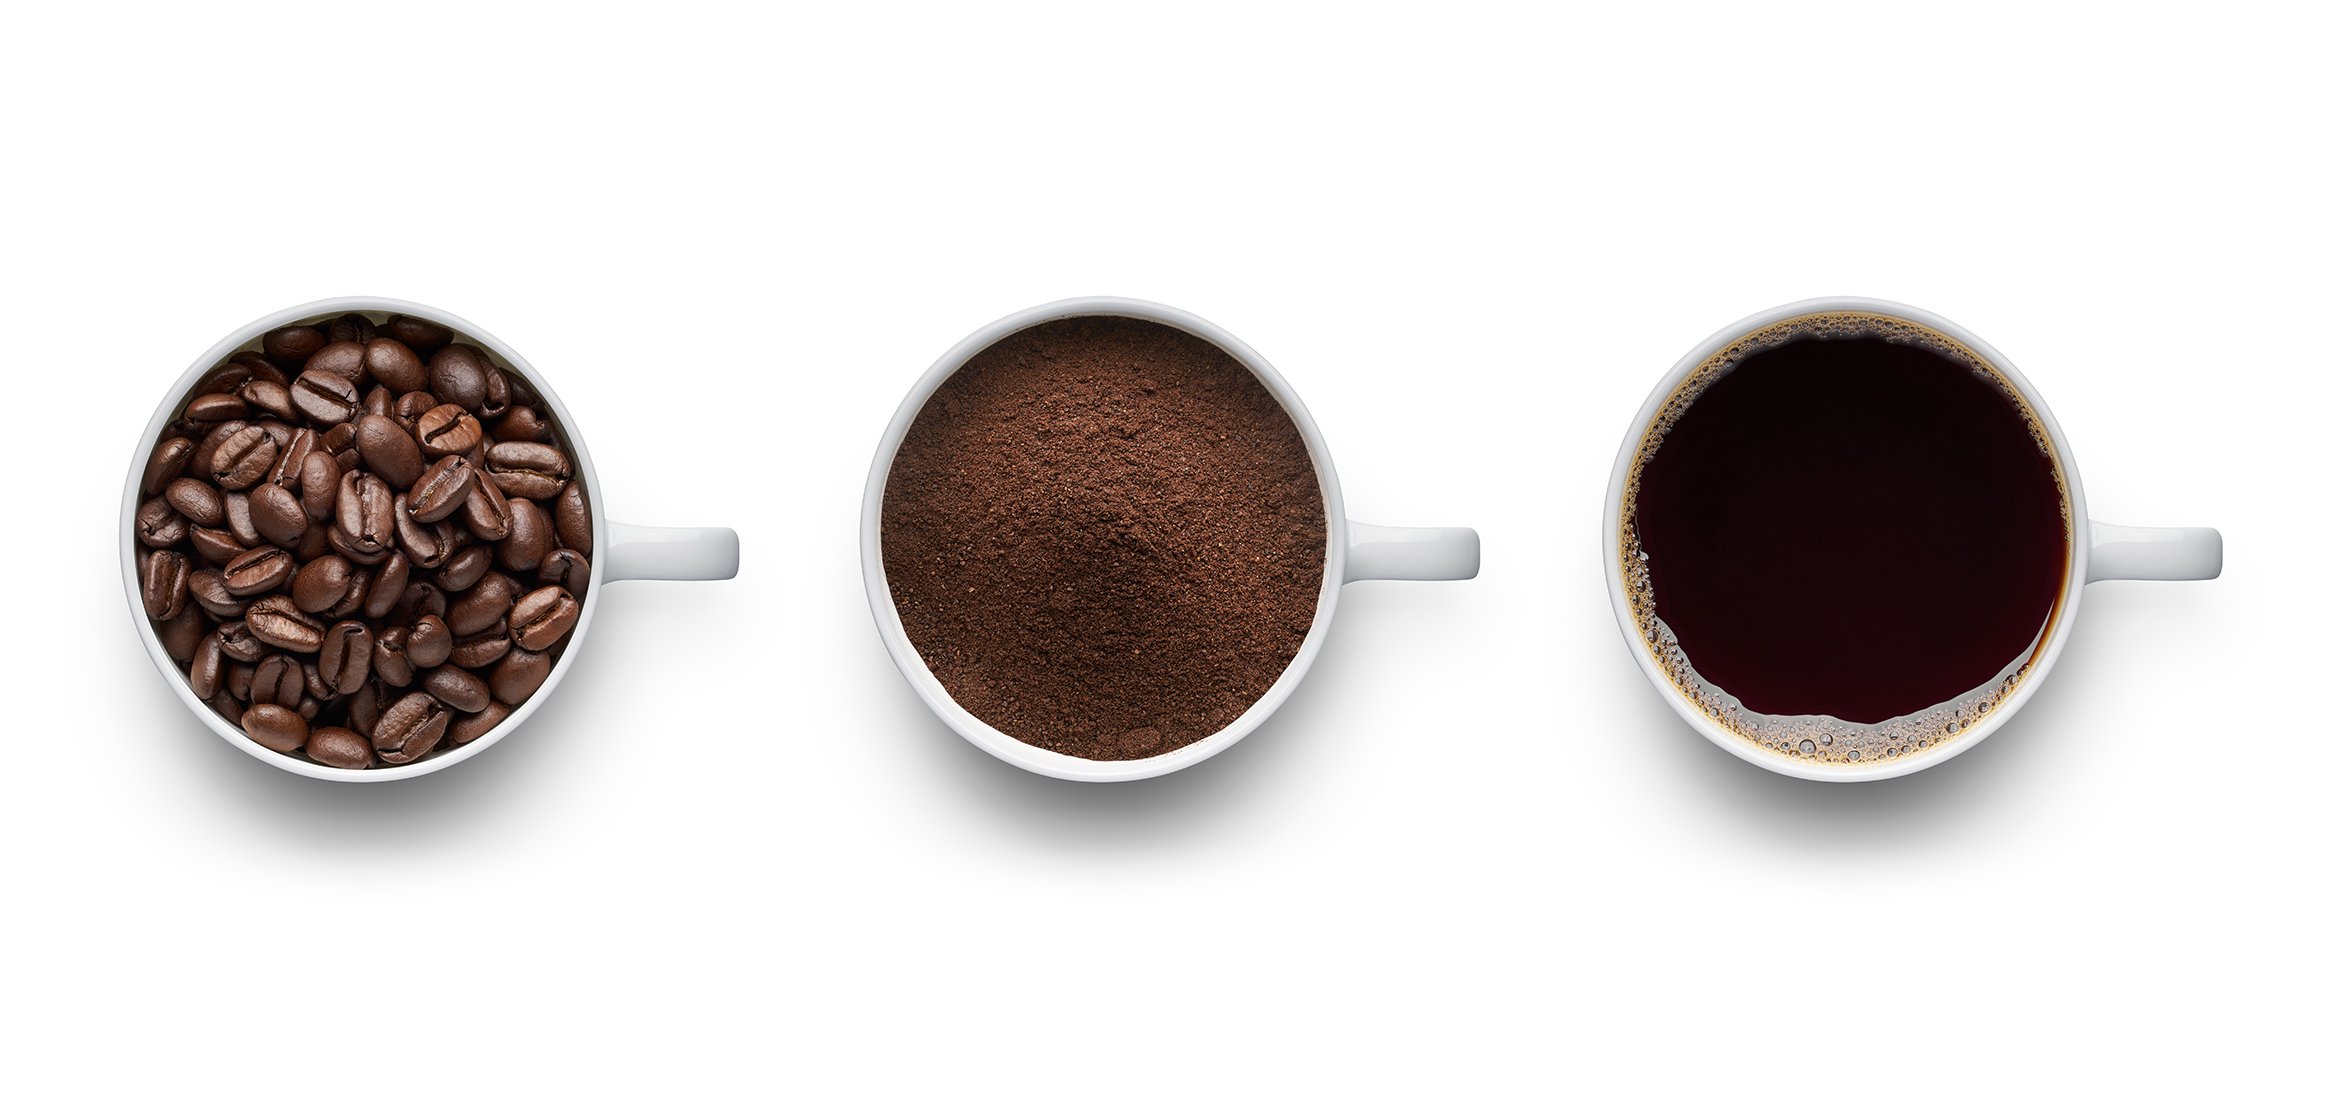 Whole Beans or Ground Coffee?